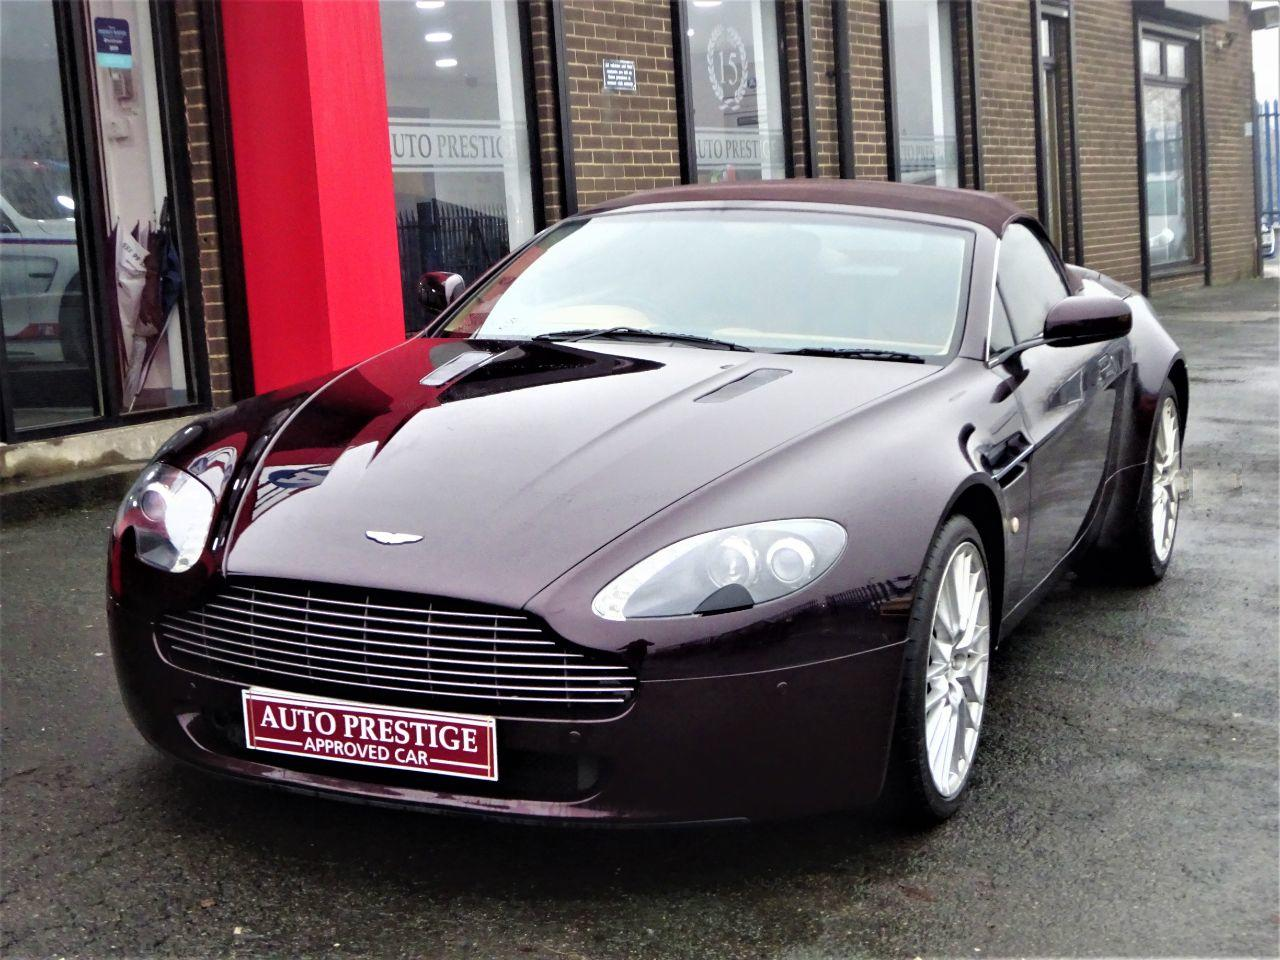 Aston Martin V8 Vantage 4.7 VANTAGE LOW MILEAGE ROADSTER CONVERTIBLE Convertible Petrol Red at Autoprestige Bradford